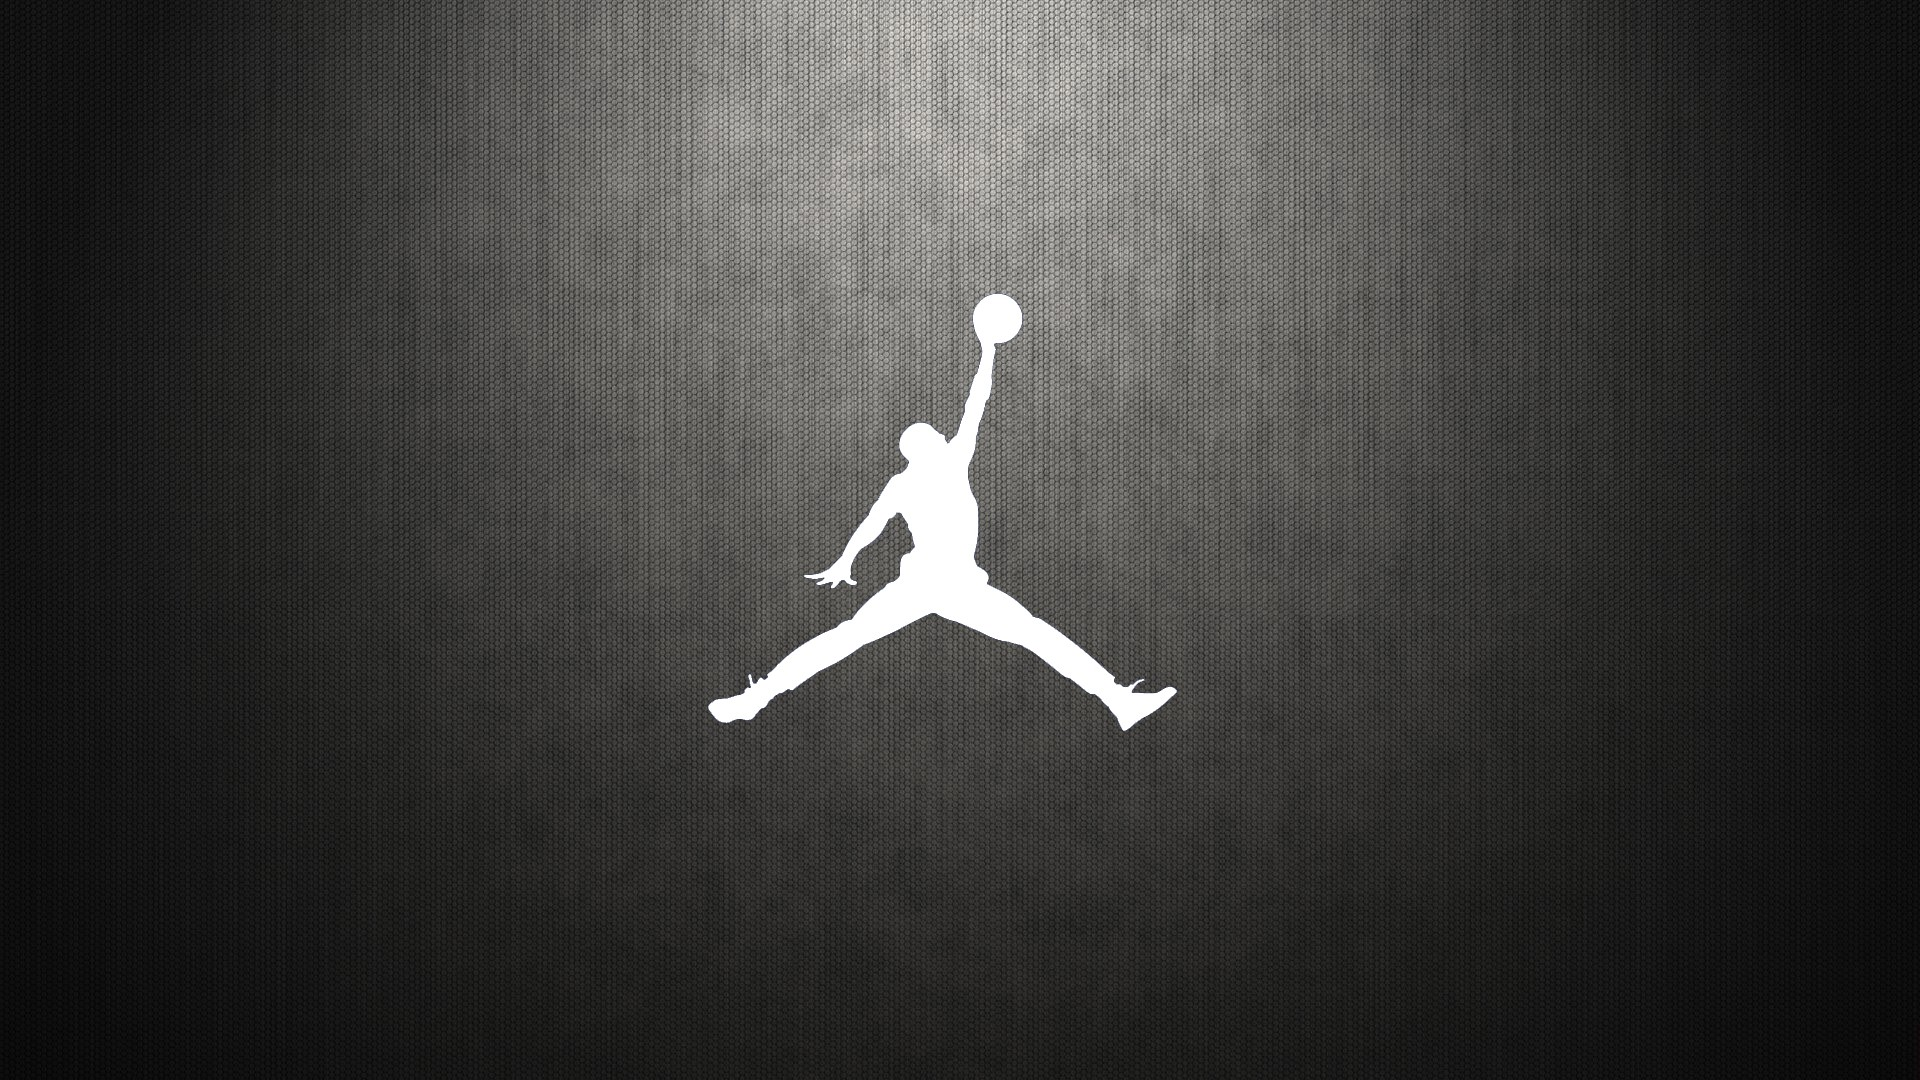 Jordan Logo Wallpaper HD | PixelsTalk Net